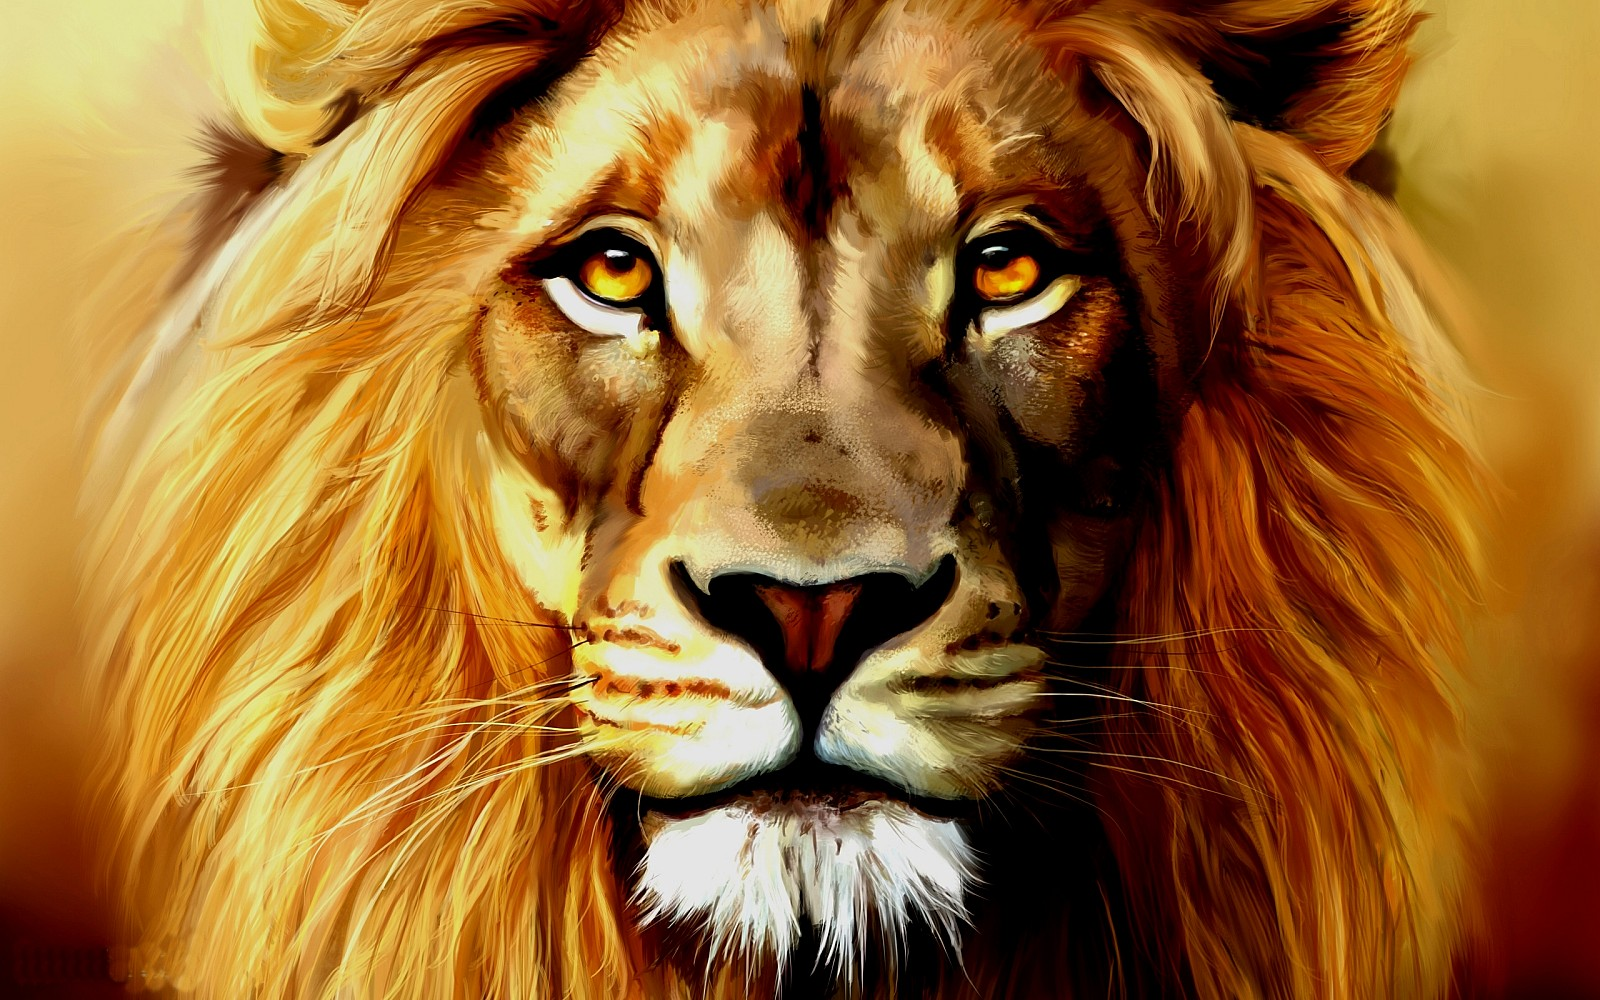 hd-wallpapers-lion-face-clean-site-wallpaper.jpg